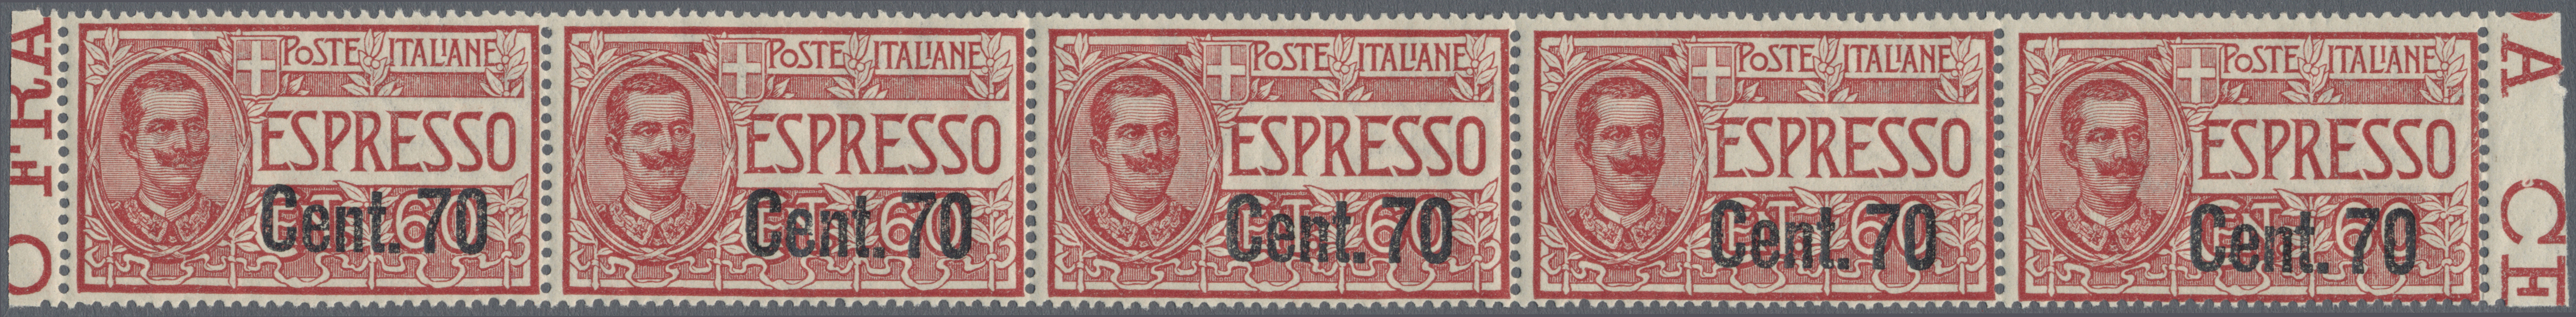 Lot 961 - italien  -  Auktionshaus Christoph Gärtner GmbH & Co. KG Auction #41 Special auction part one